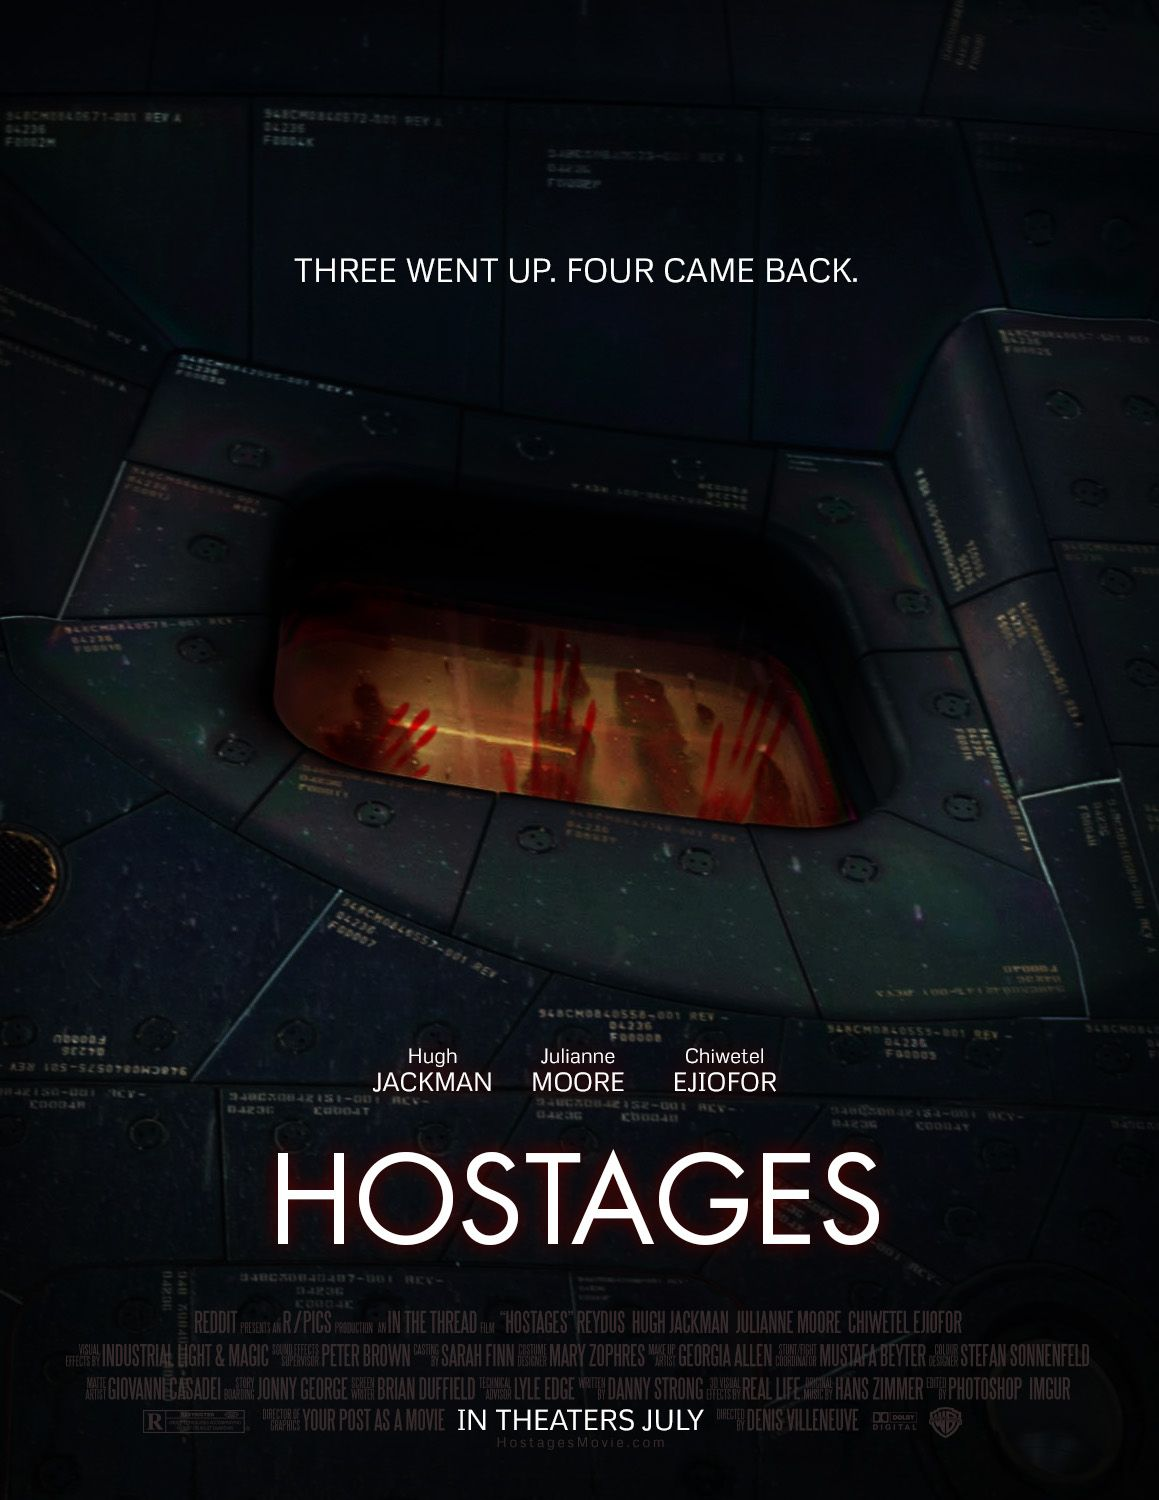 03b. Hostages. Three went up. Four came back. In theaters July.